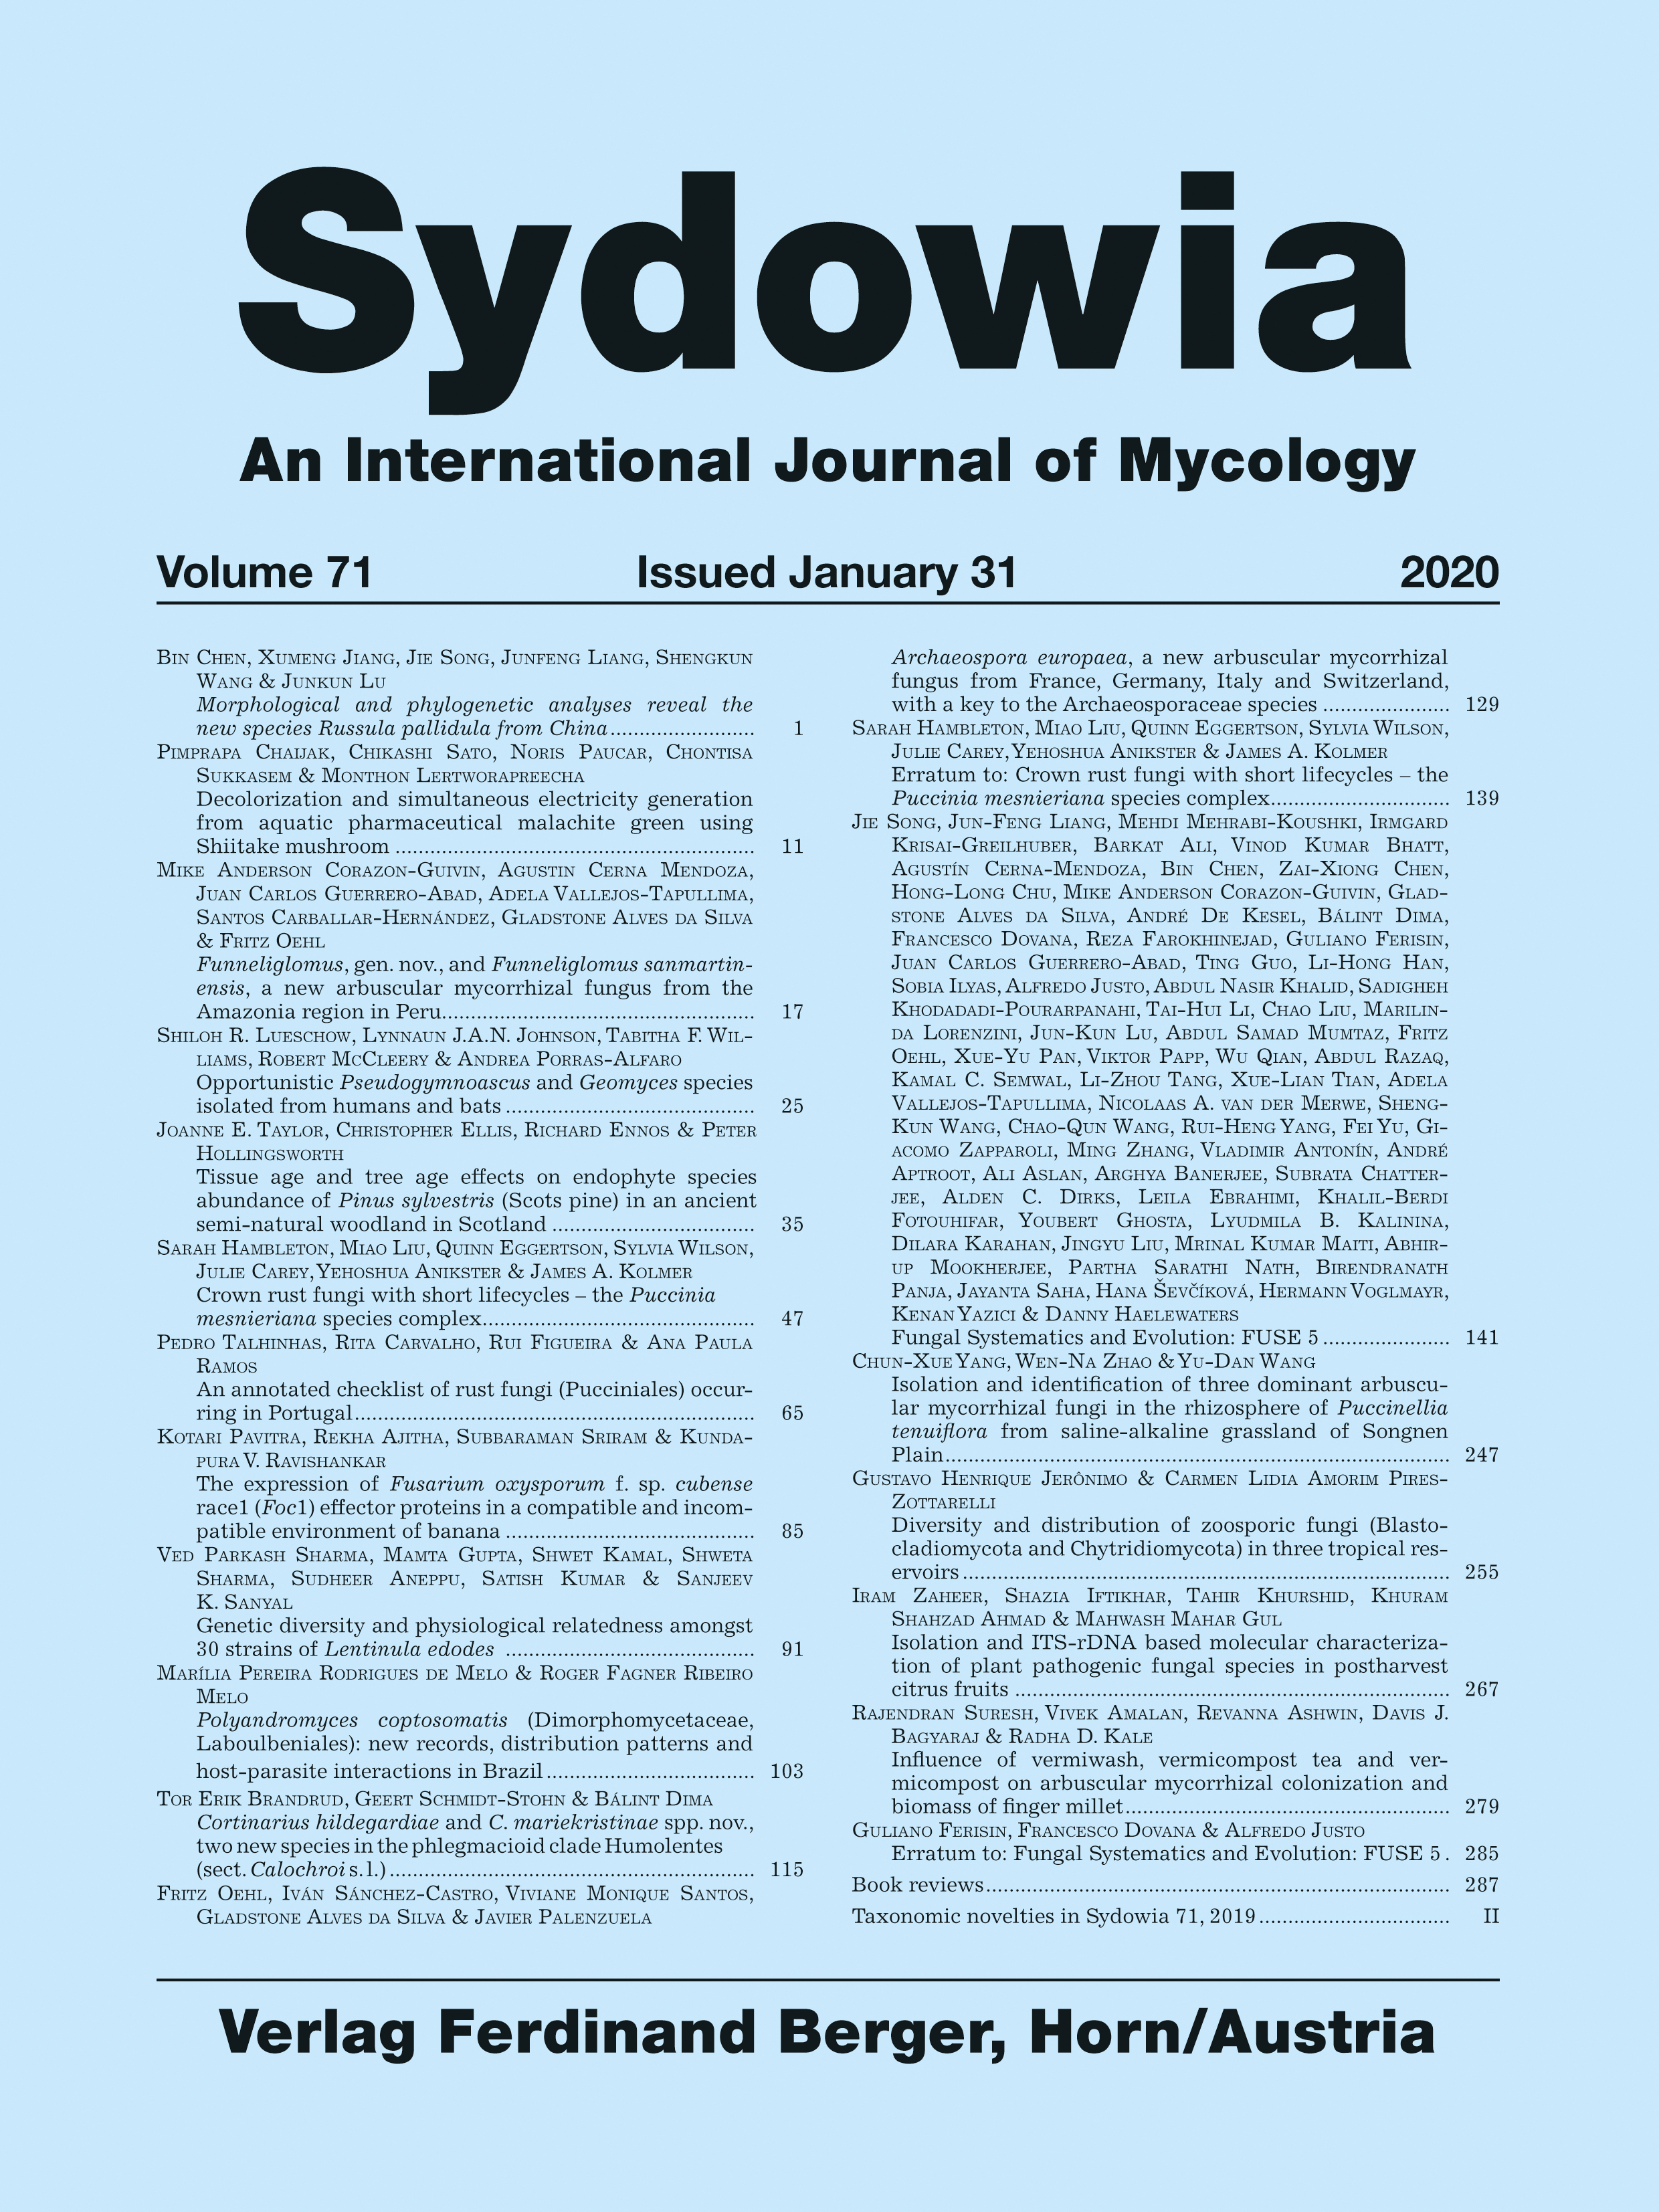 Sydowia Vol. 71 E-Book/S 247-253 OPEN ACCESS